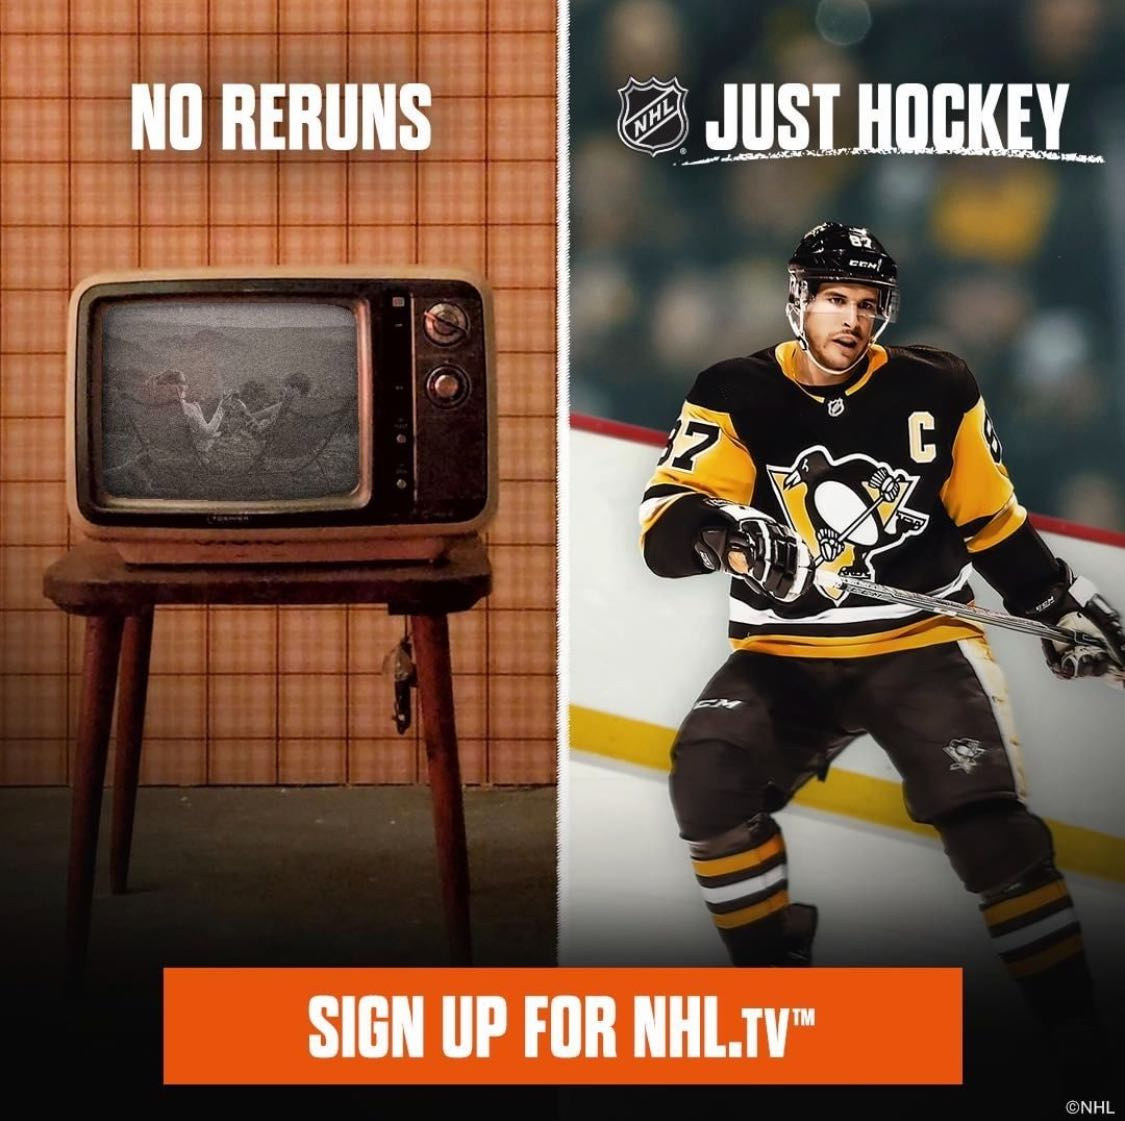 Tone-deaf NHL ad promises 'no soap operas, just hockey'